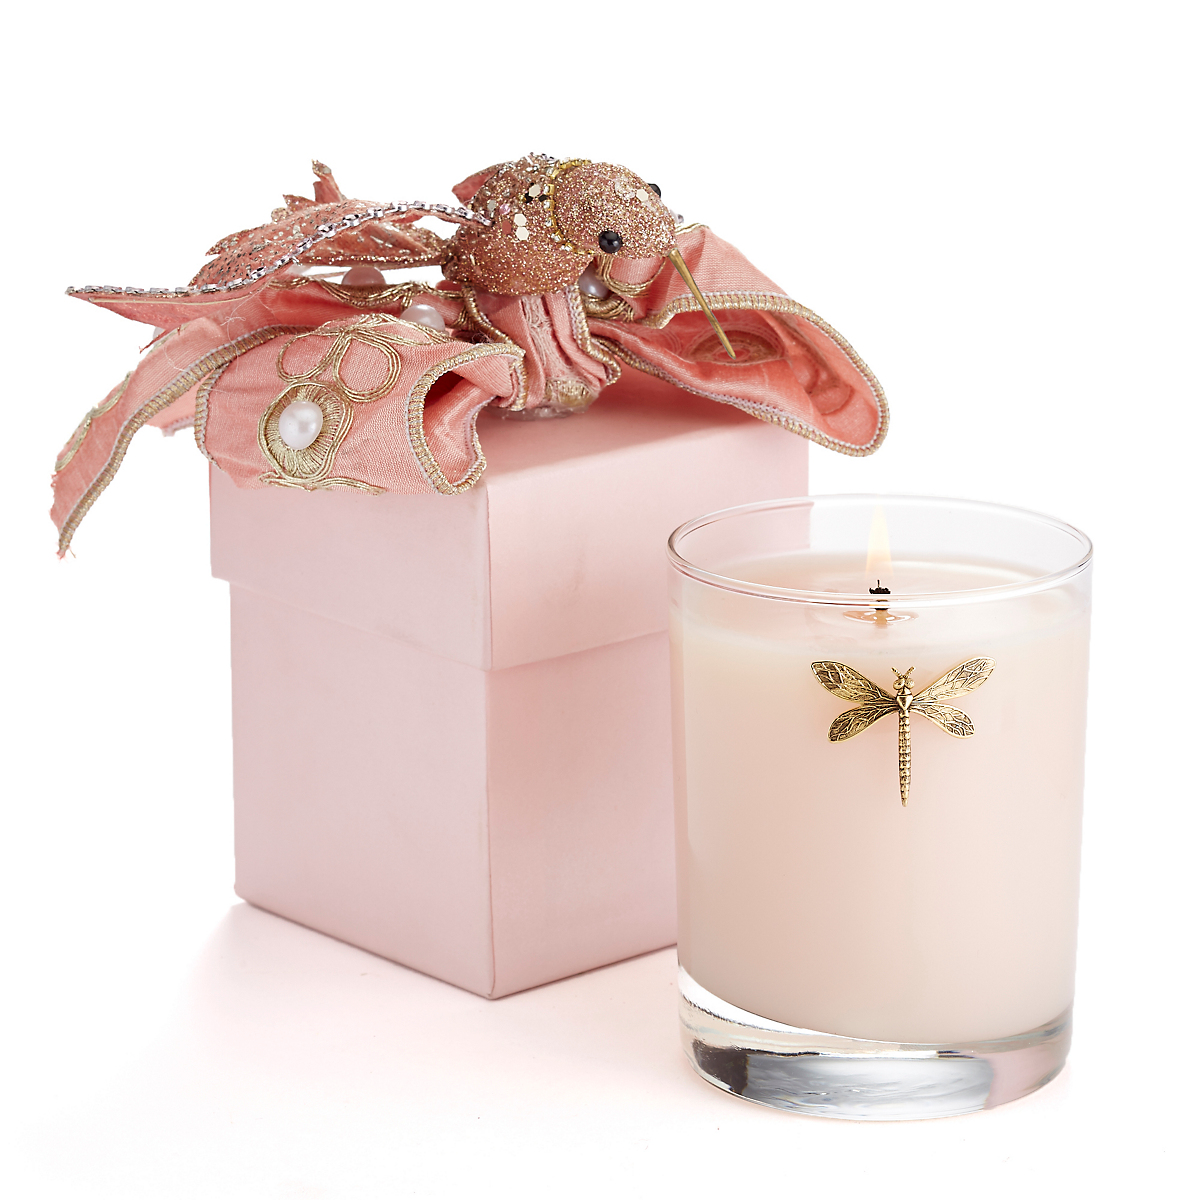 Spring Equinox Candles, Pink